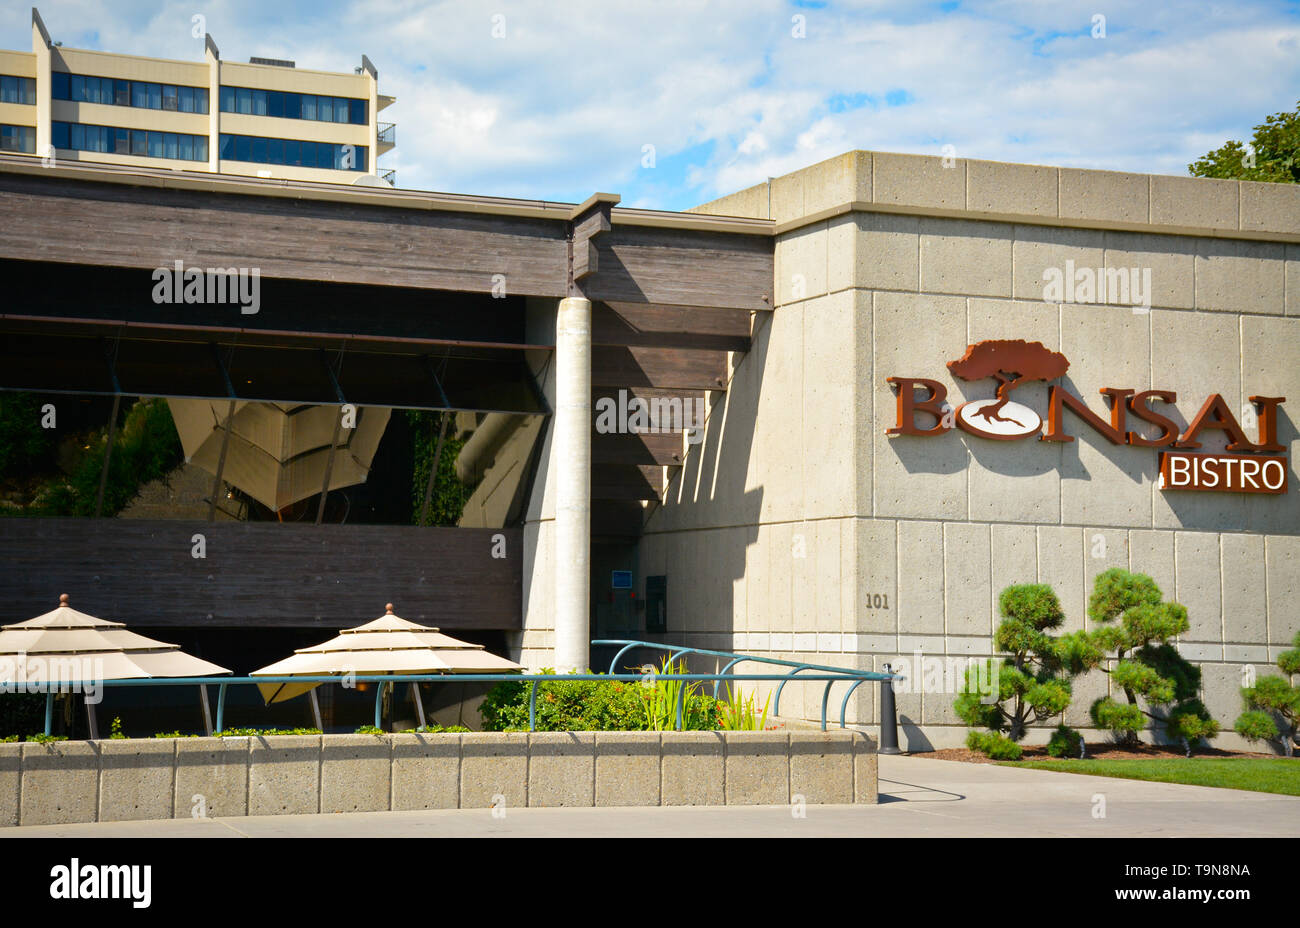 The Bonsai Bistro Specializing In Sushi In An Attractively Modern Building Design In Downtown Coeur D Alene Id Stock Photo Alamy